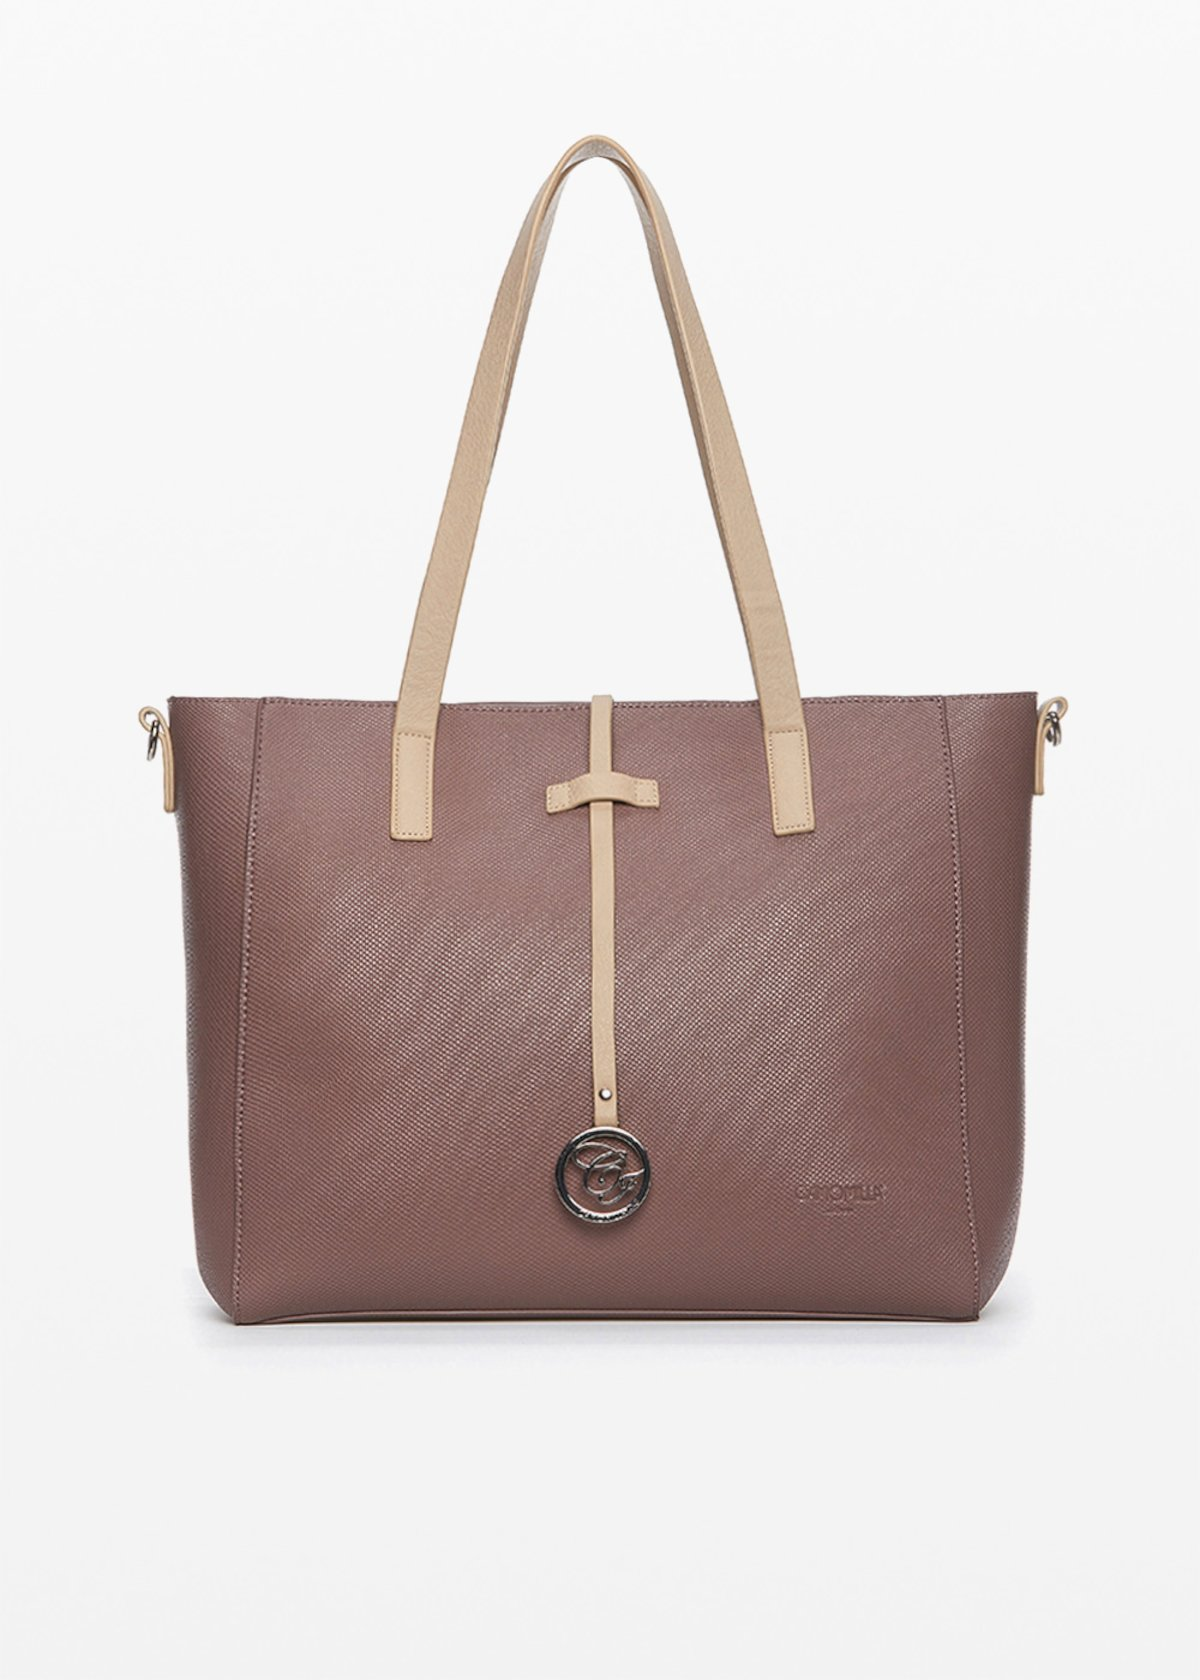 Brigitta Shopping faux leather bicolour bag with logo charm on the front